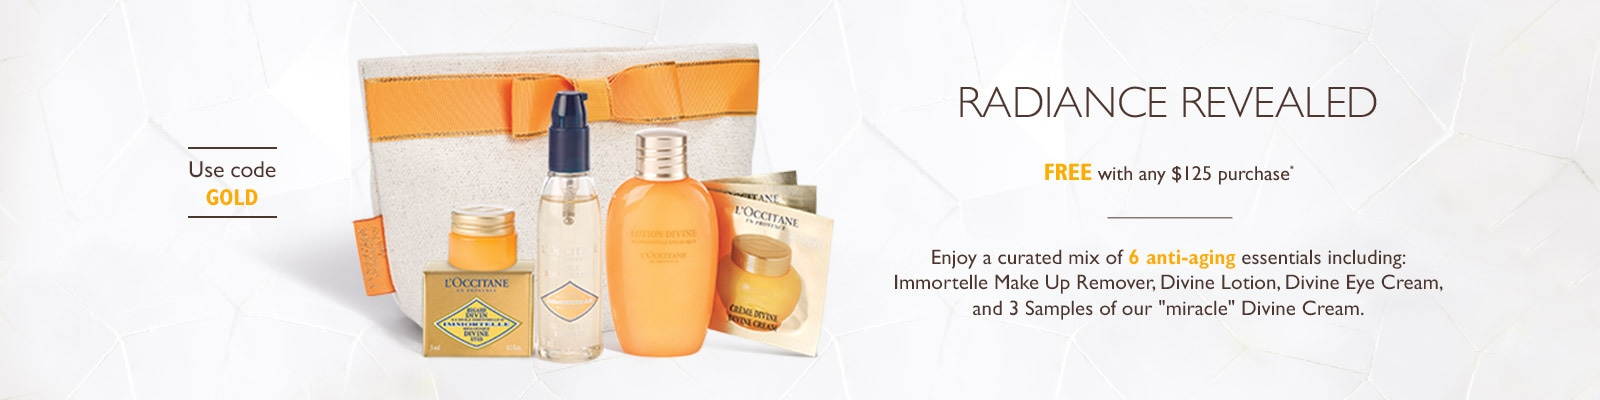 Receive a free 6-piece bonus gift with your $125 L'Occitane purchase